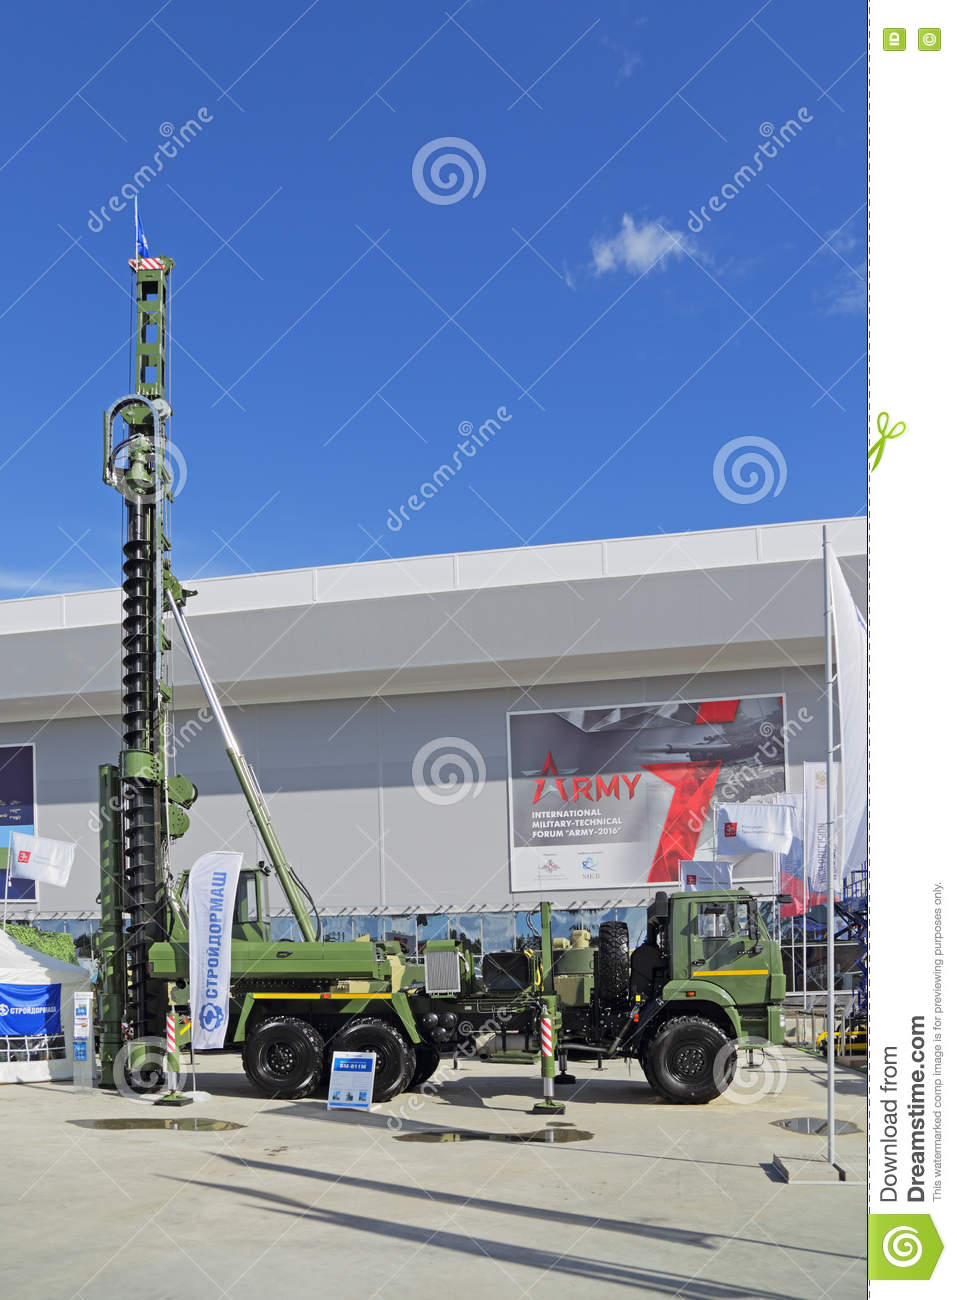 Drilling And Piling Machine Editorial Stock Image - Image of